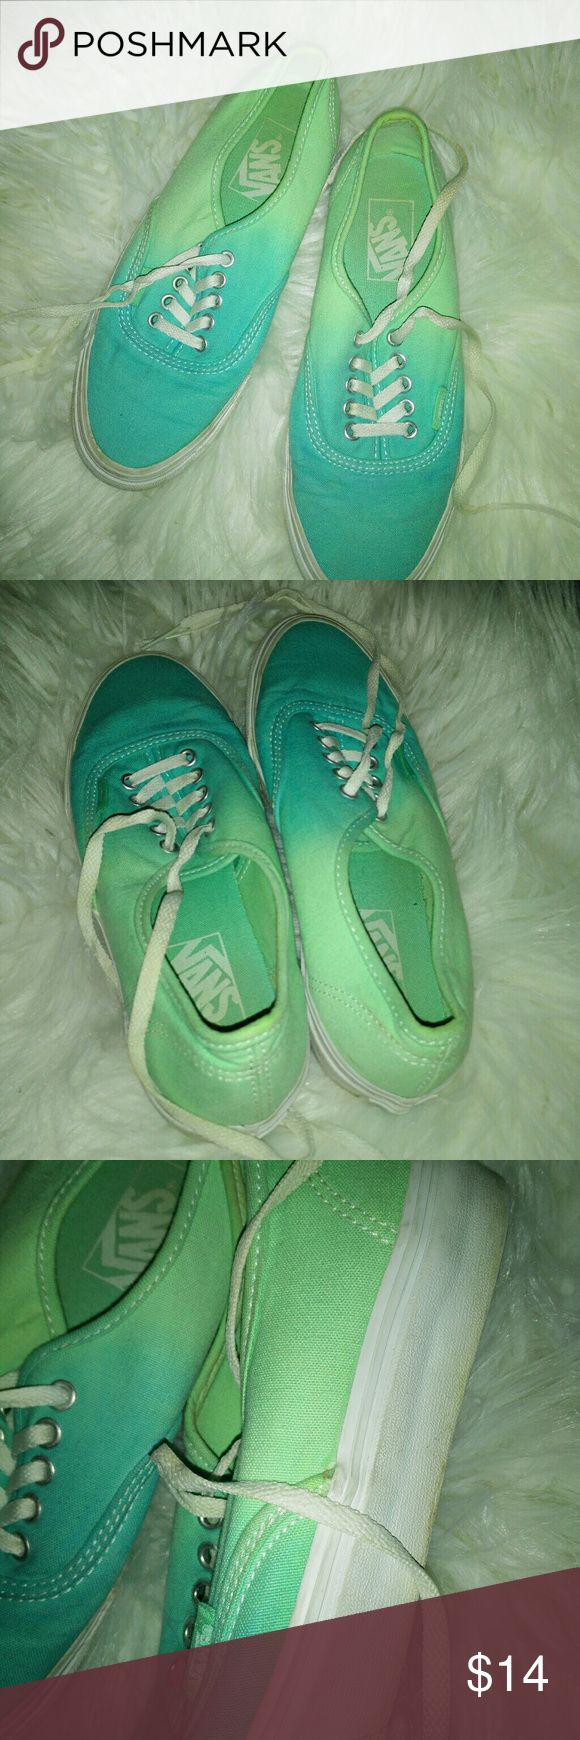 VANS ladies shoes VANS ladies shoes  Two tone color go from teal blue toe to lighter blue back to heel Men's size 4.5 Ladies size 6 Great condition Vans Shoes Sneakers